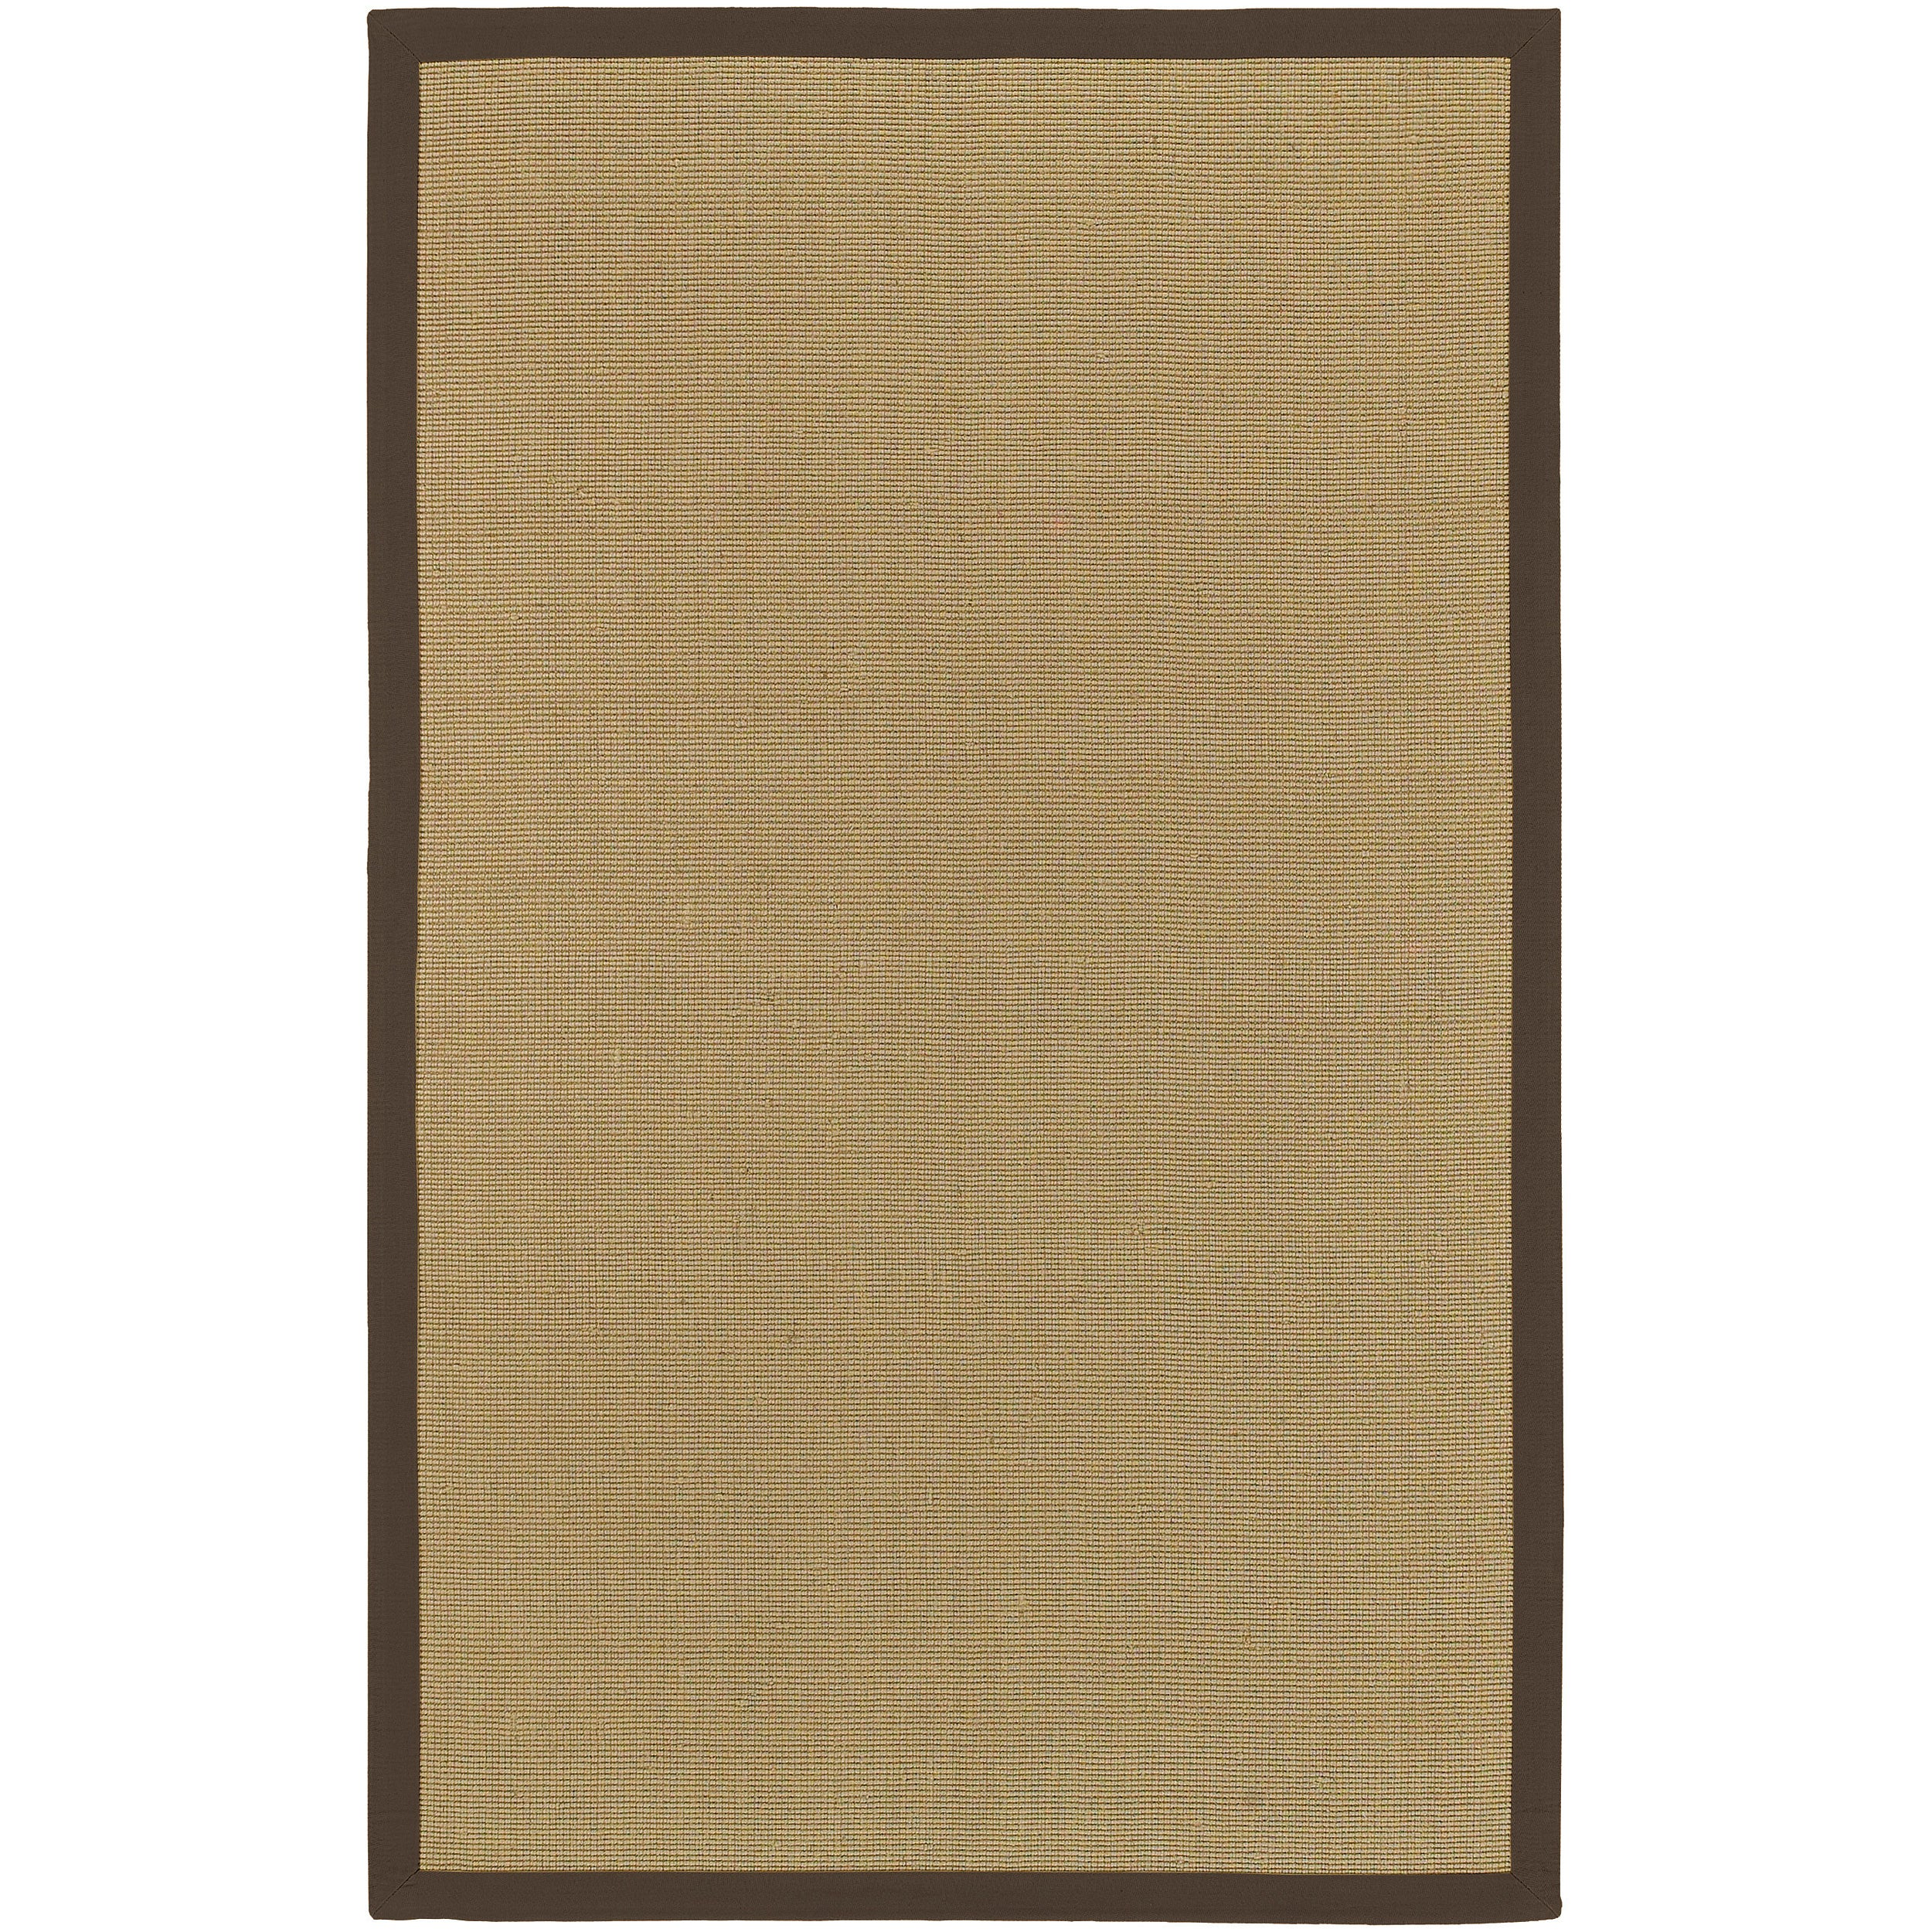 Woven Town Chocolate Sisal with Cotton Border Rug (6'x9')